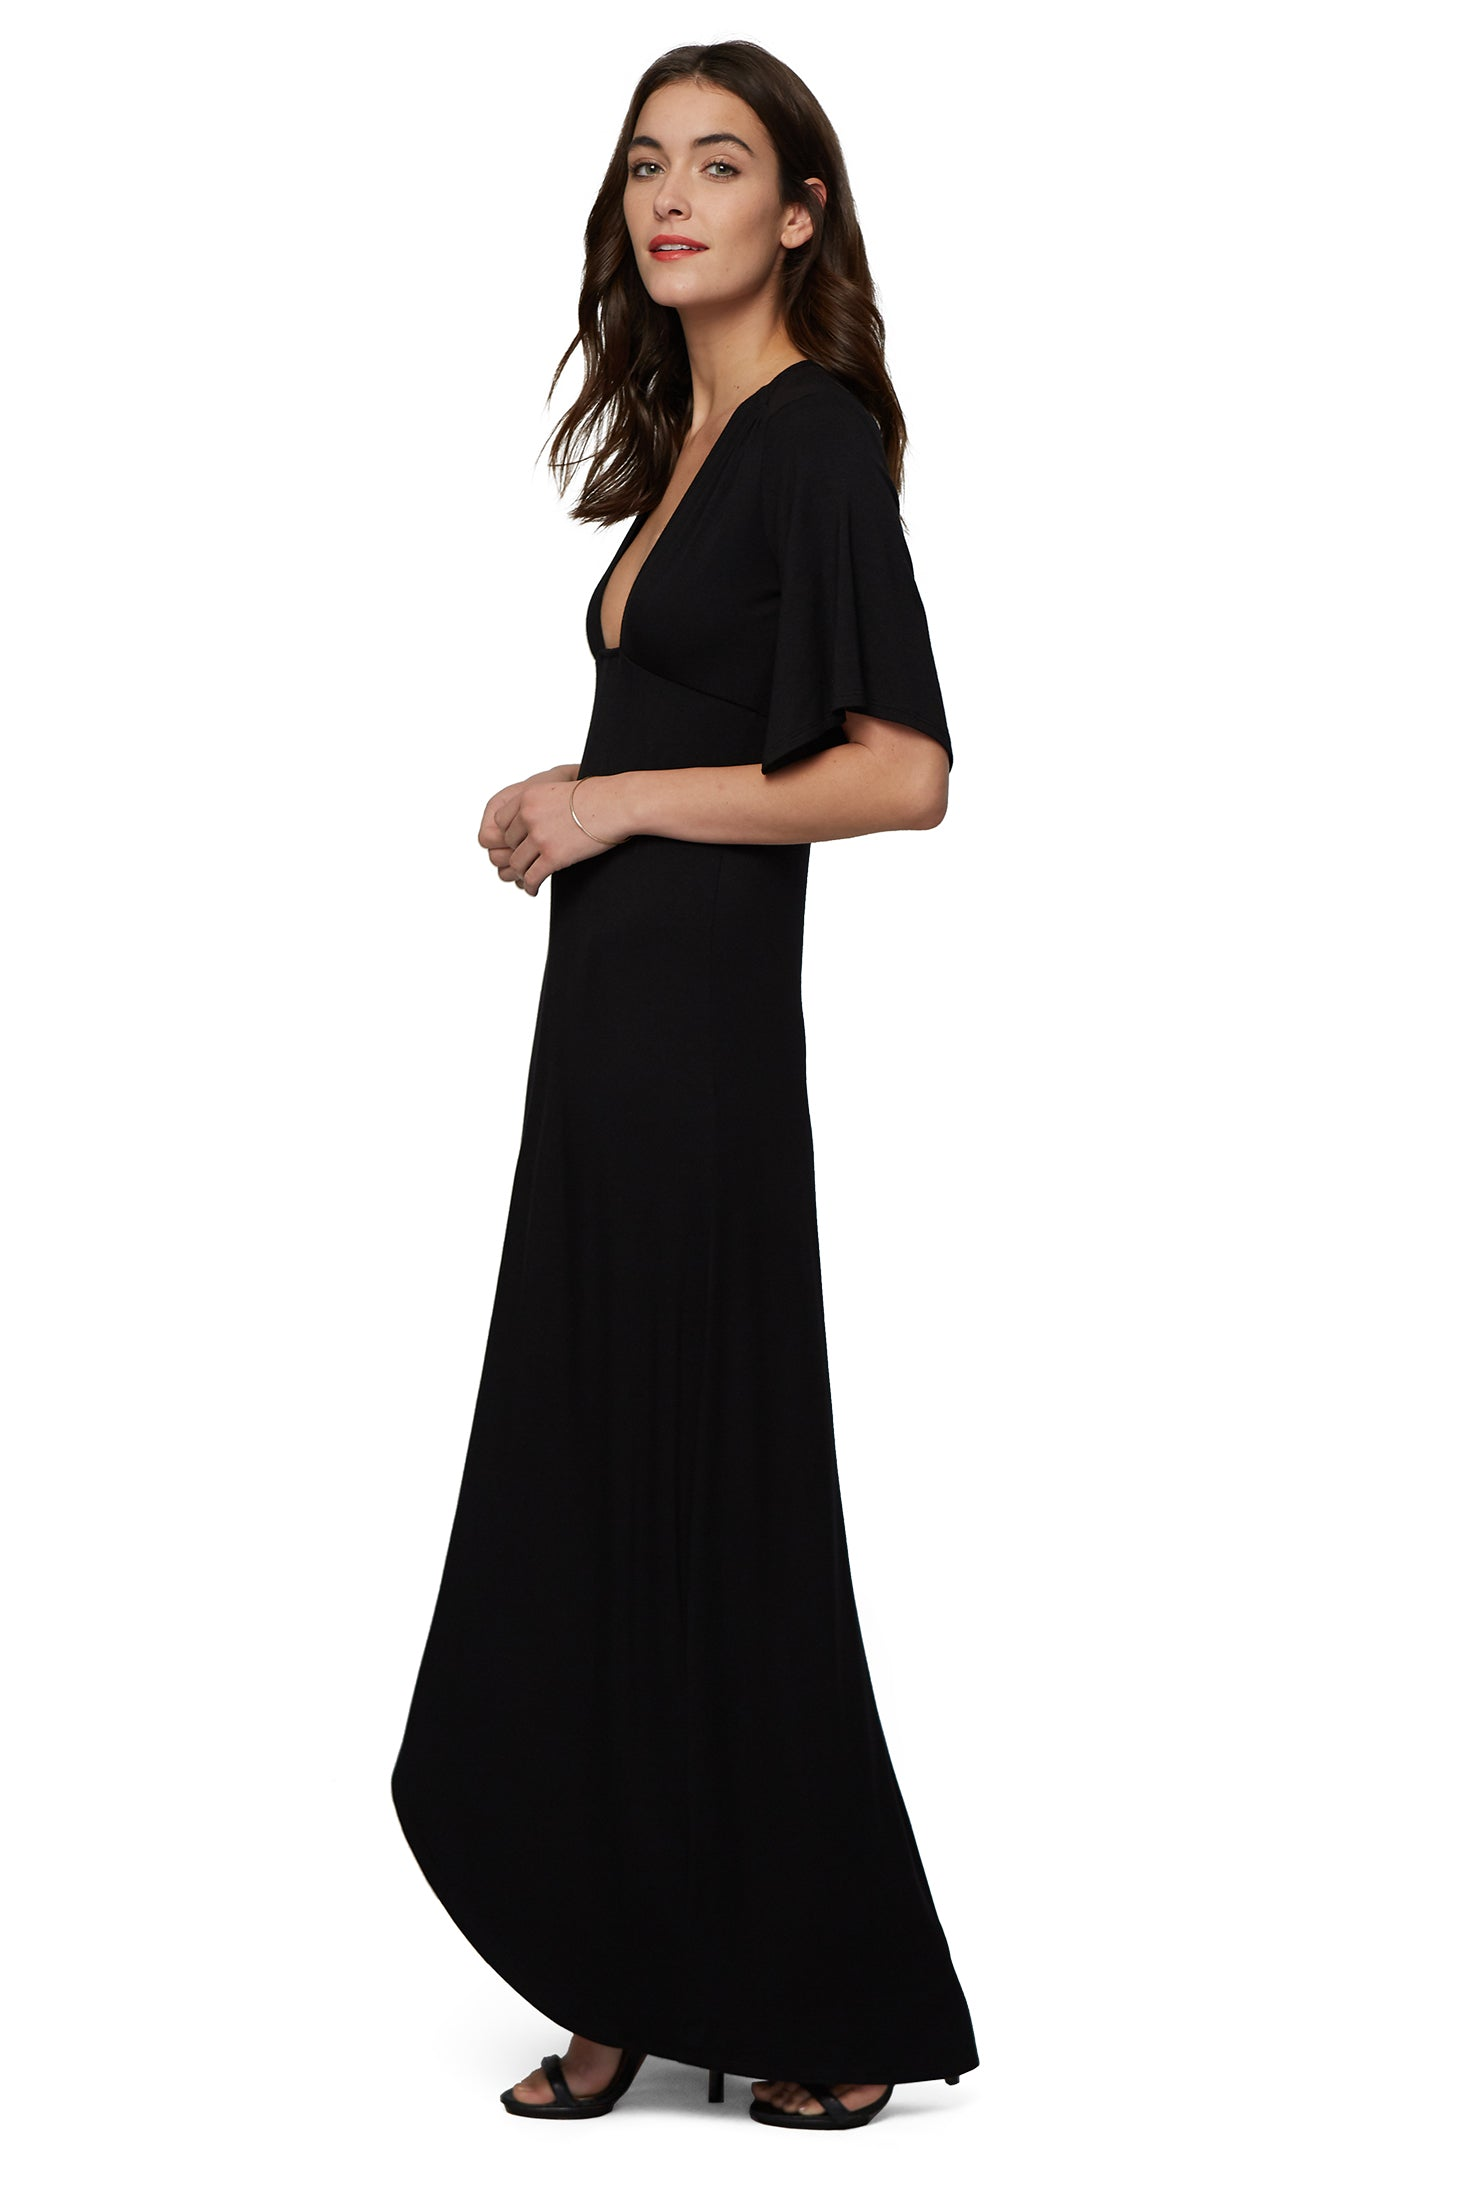 Sylvette Dress - Black